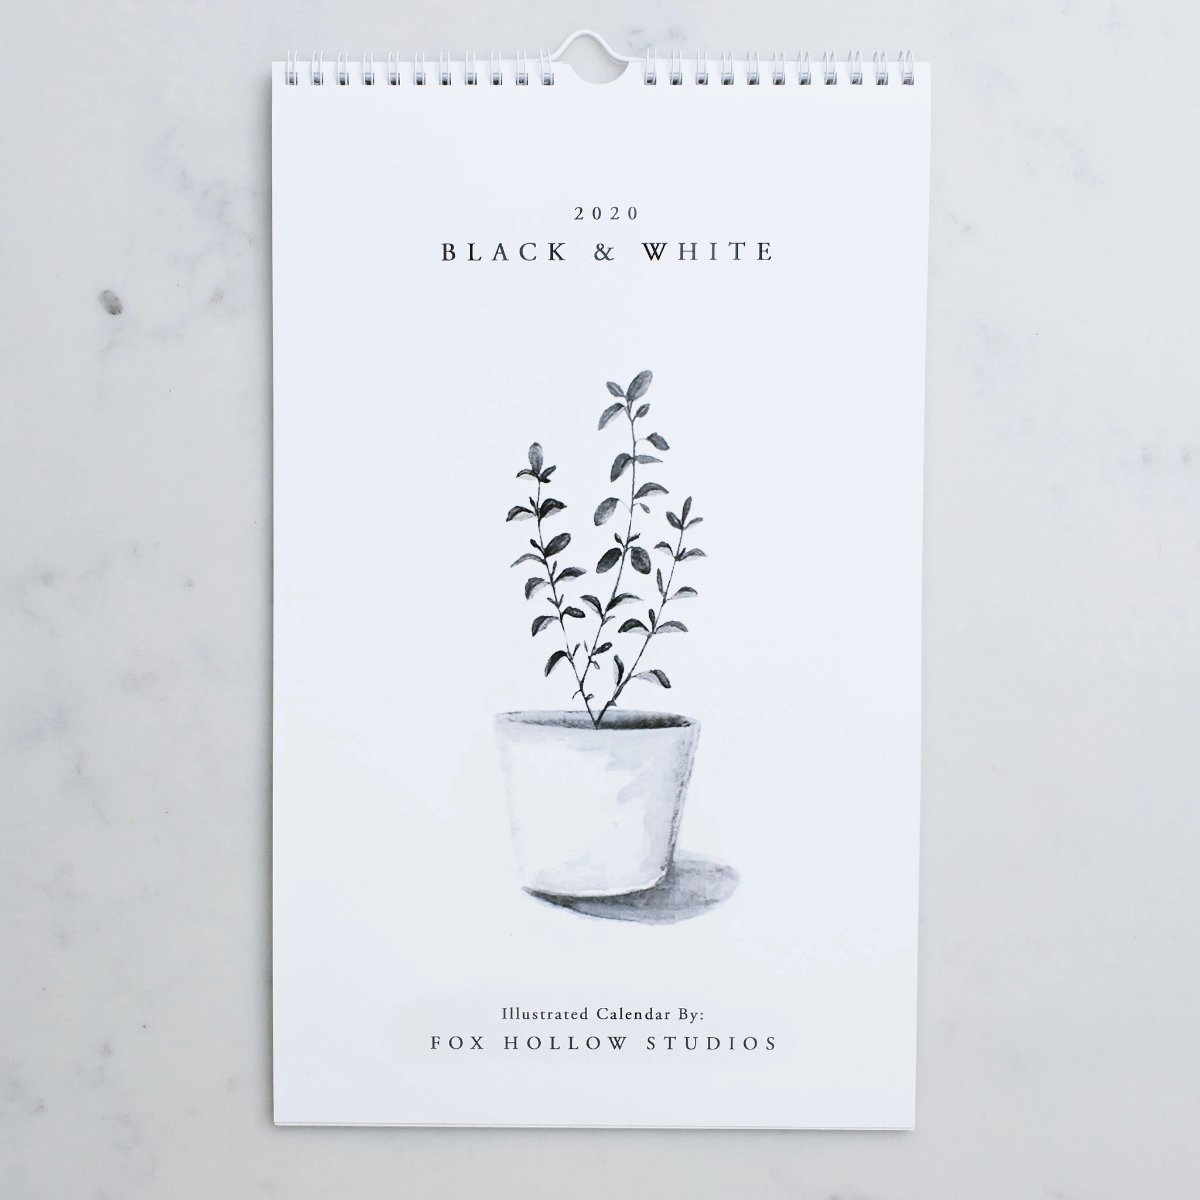 Black & White Wall Calendar (2020)